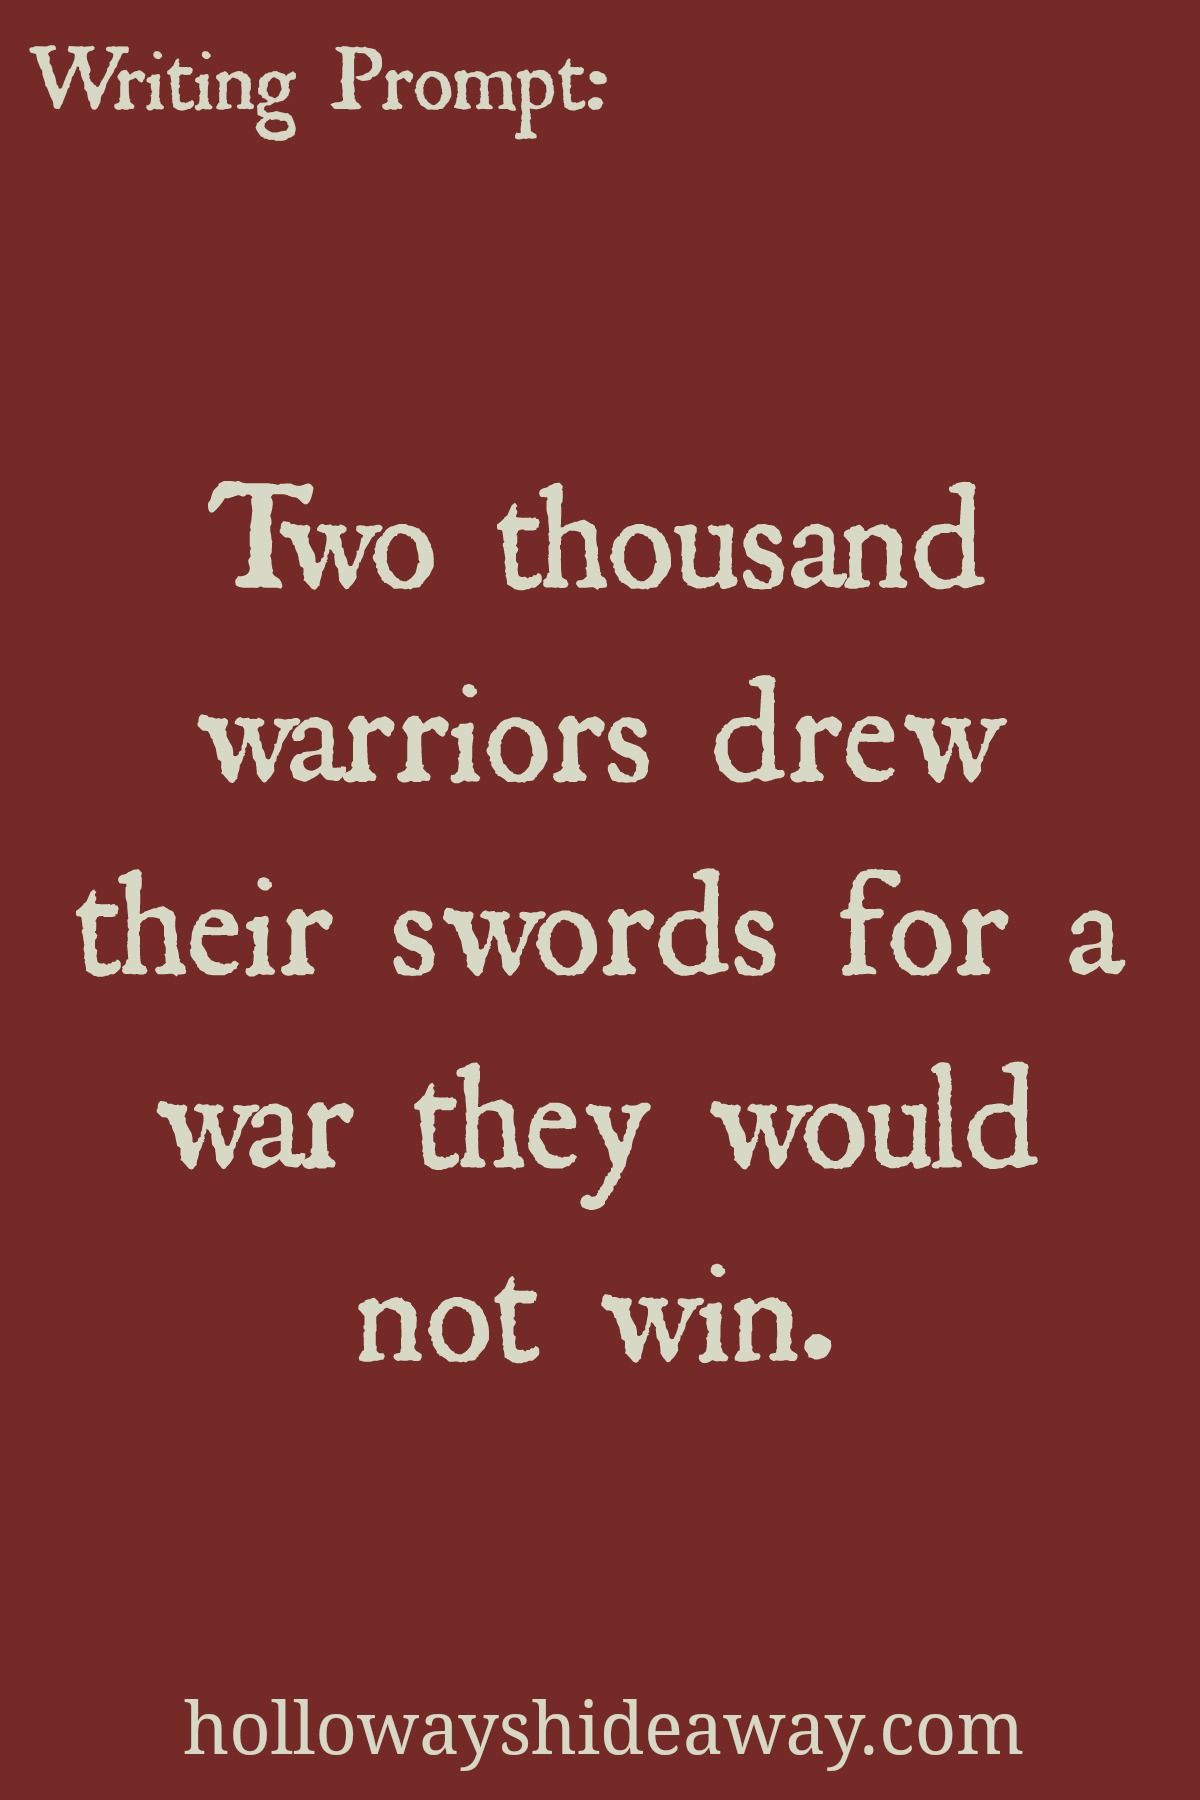 fantasy writing prompts feb2017 two thousand warriors drew their swords for a war they would not. Black Bedroom Furniture Sets. Home Design Ideas